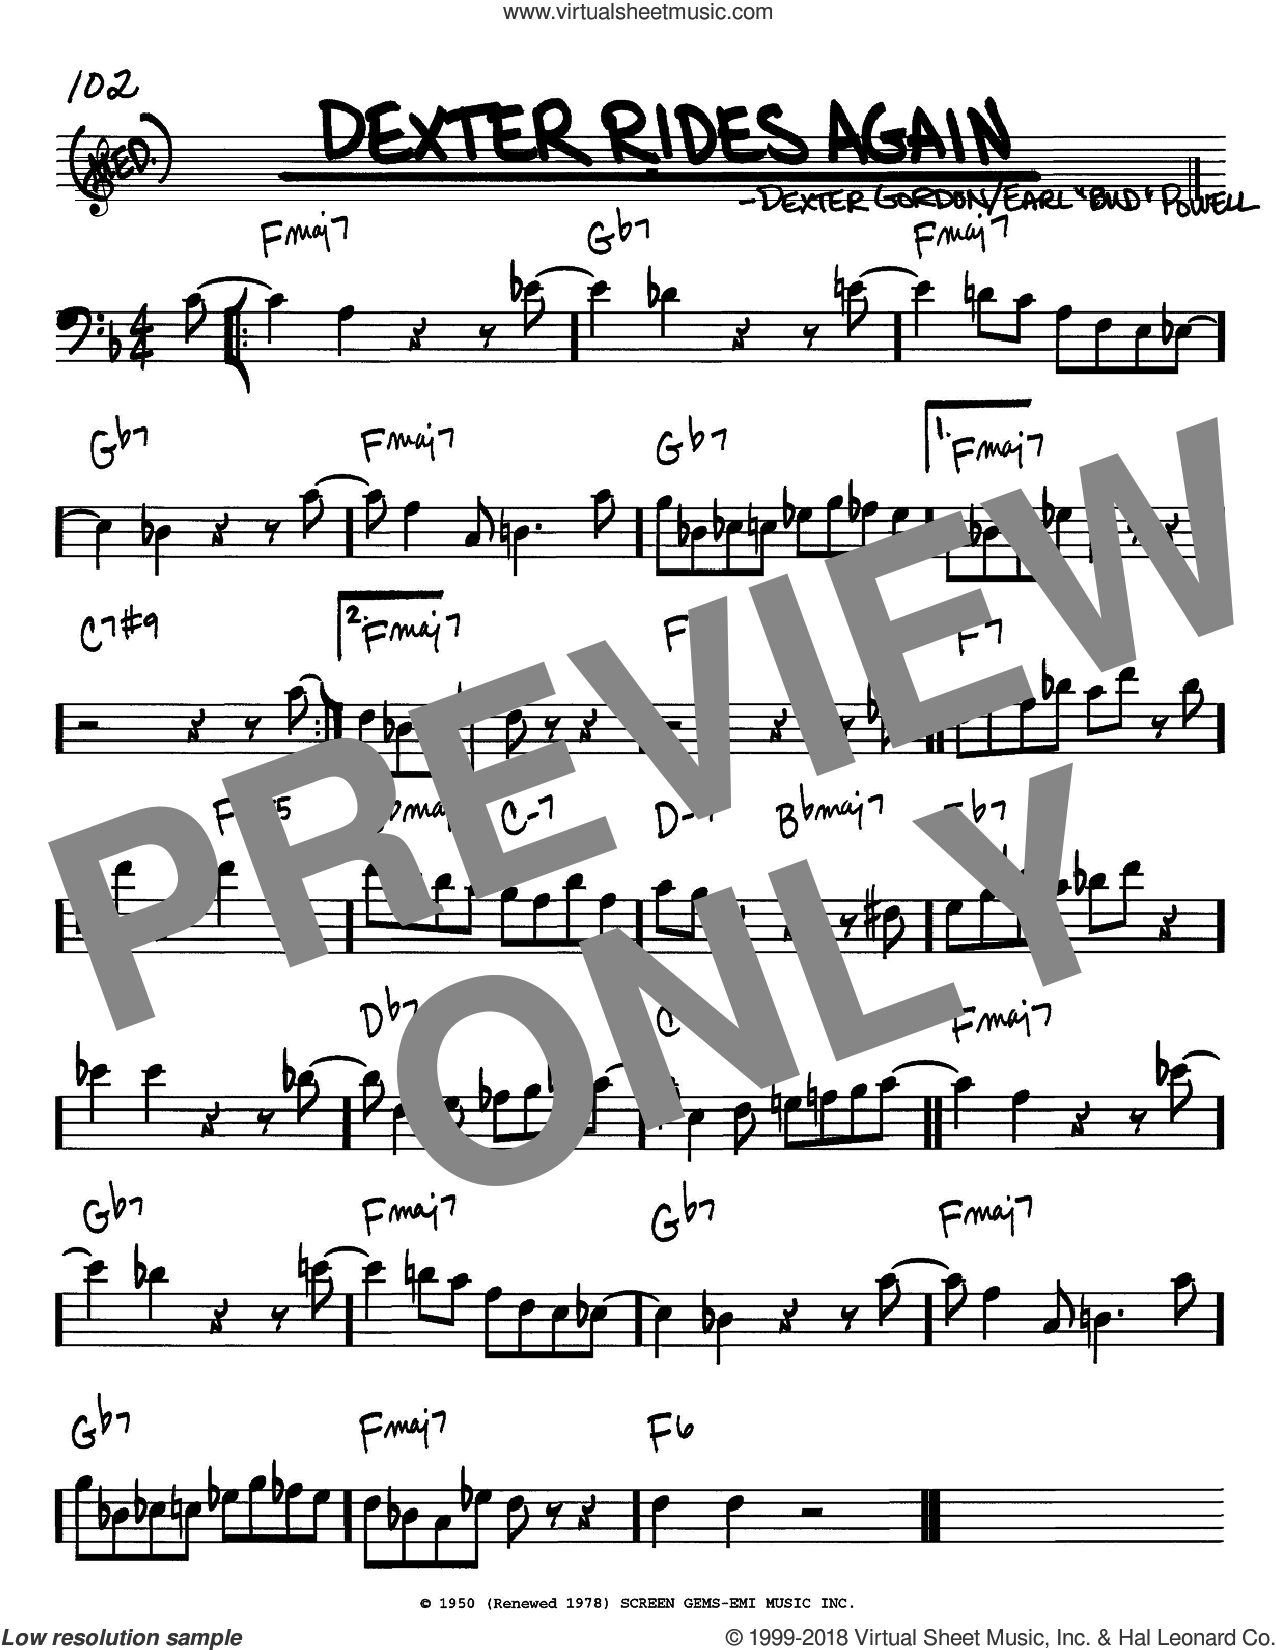 Dexter Rides Again sheet music for voice and other instruments (bass clef) by Dexter Gordon and Bud Powell, intermediate skill level